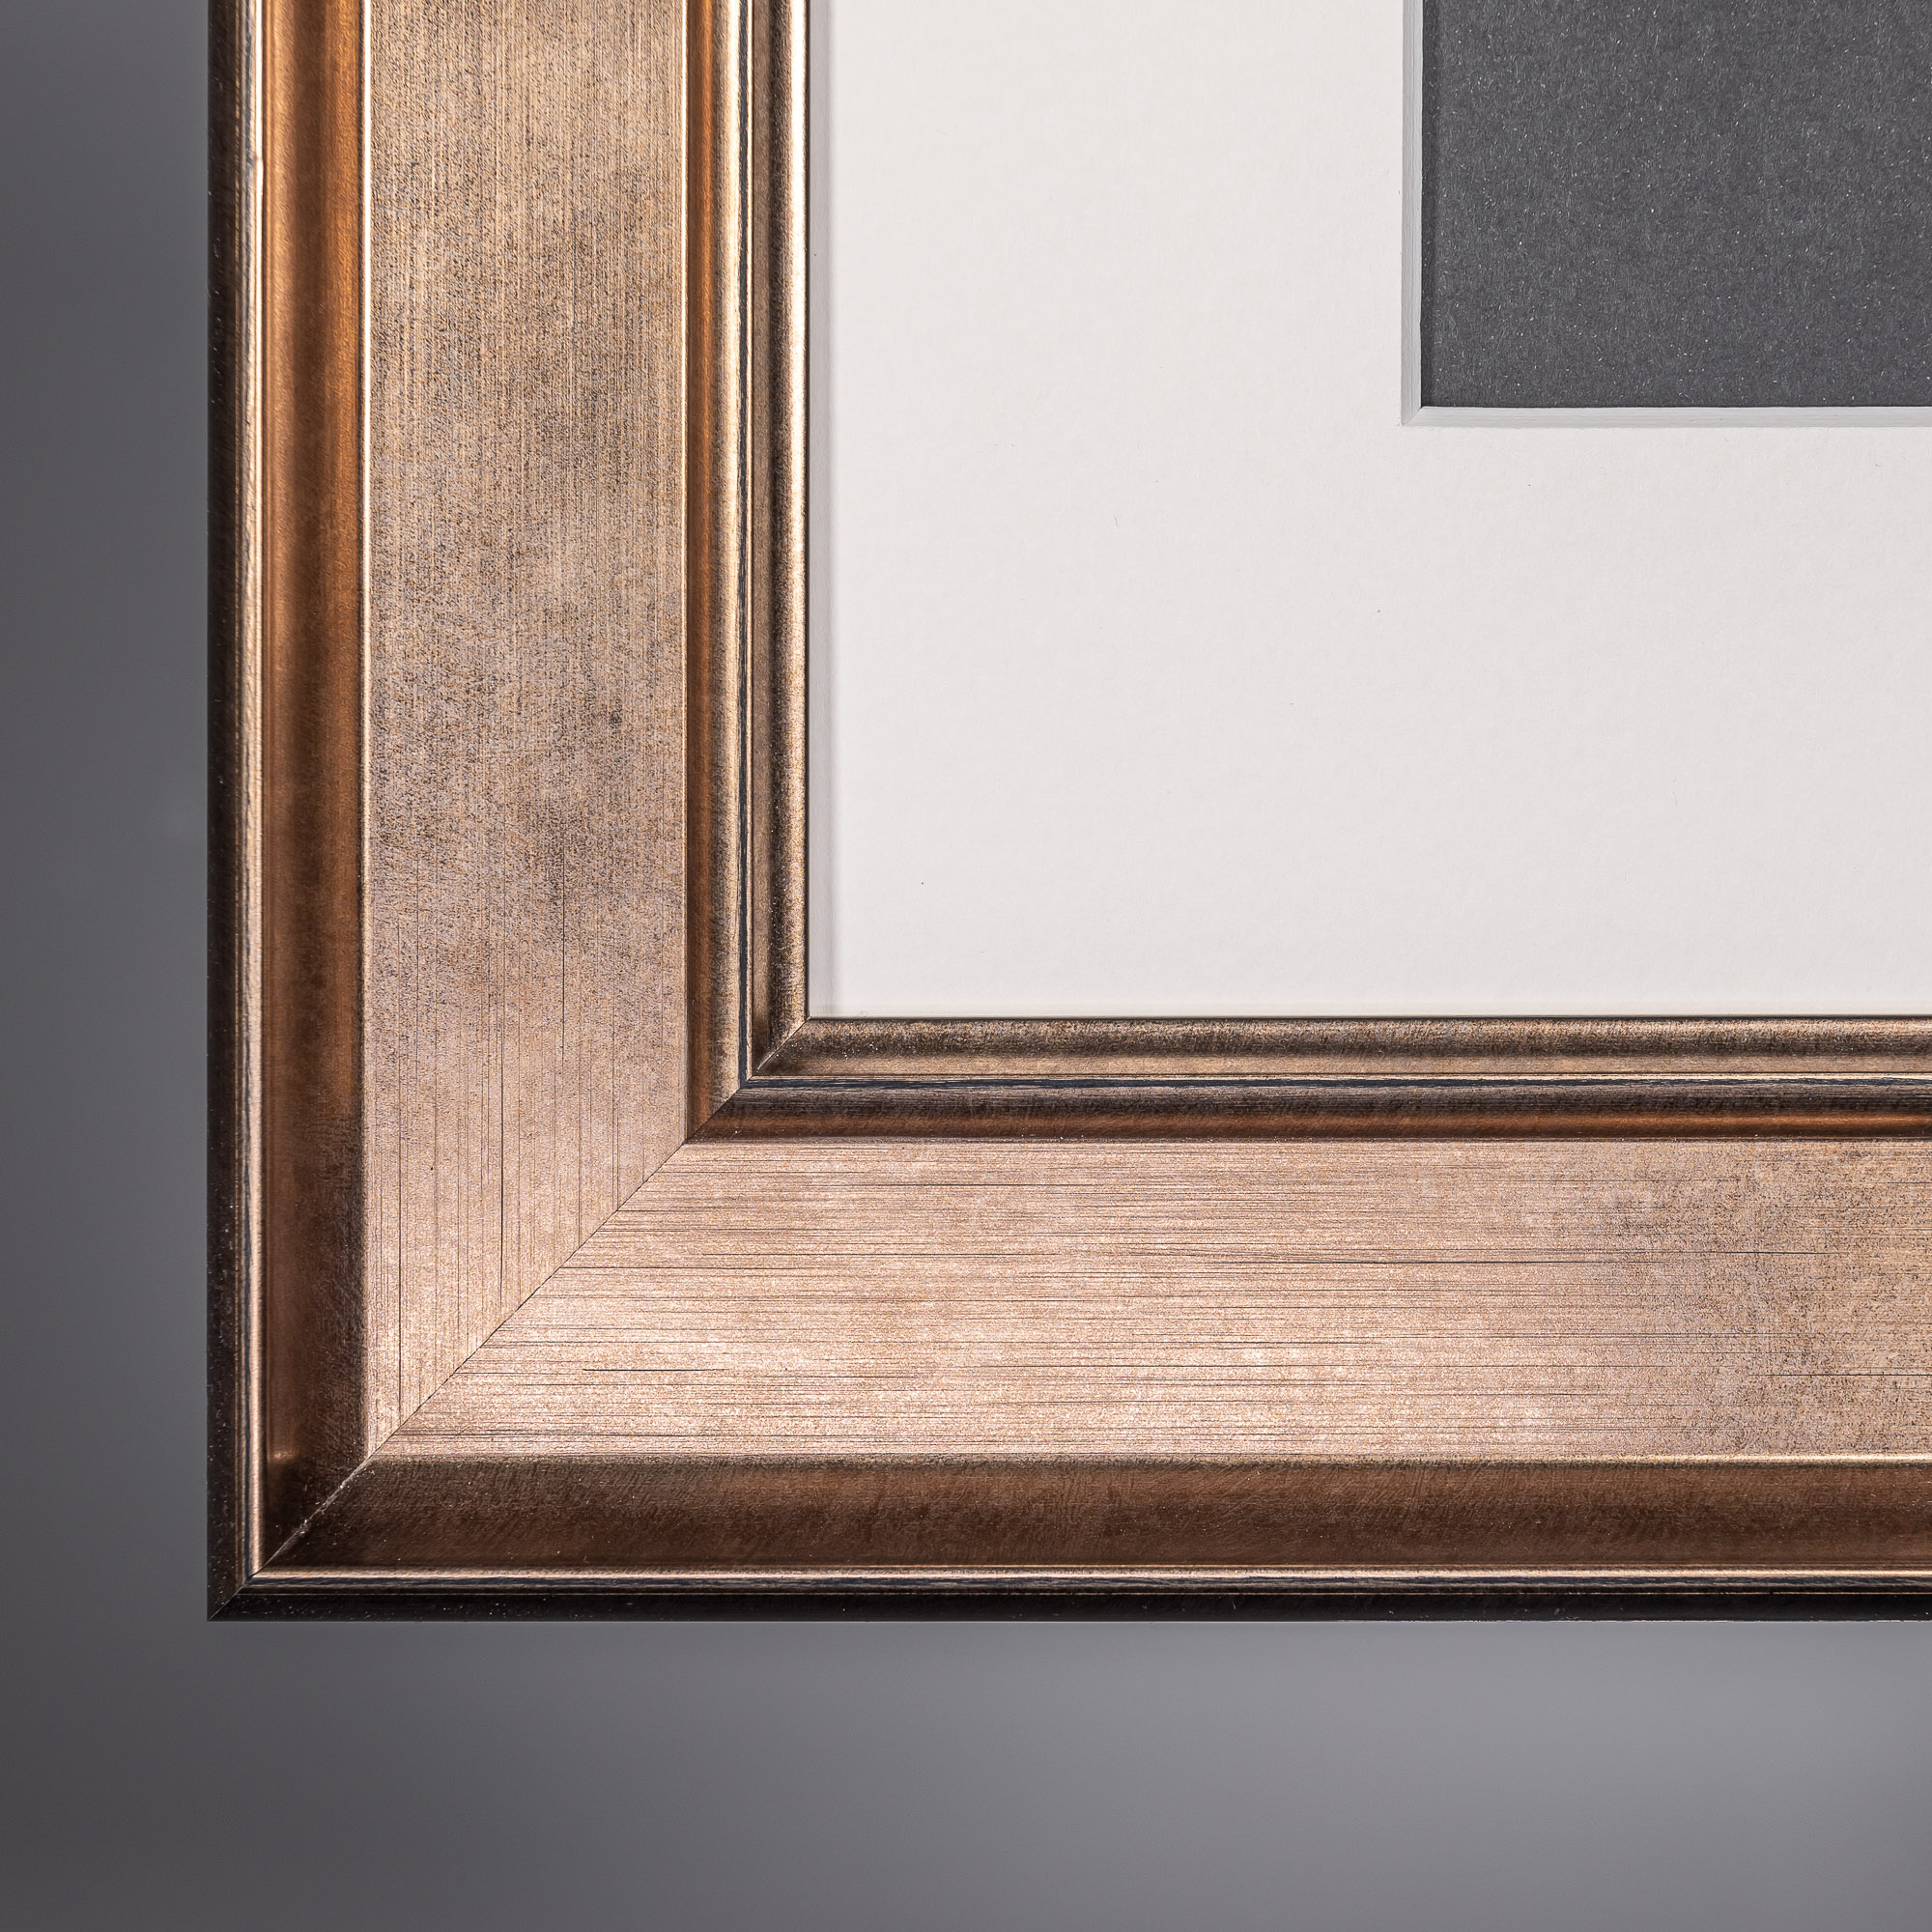 Paul Kenton / 365: Framed Print - Bronze Frame Moulding